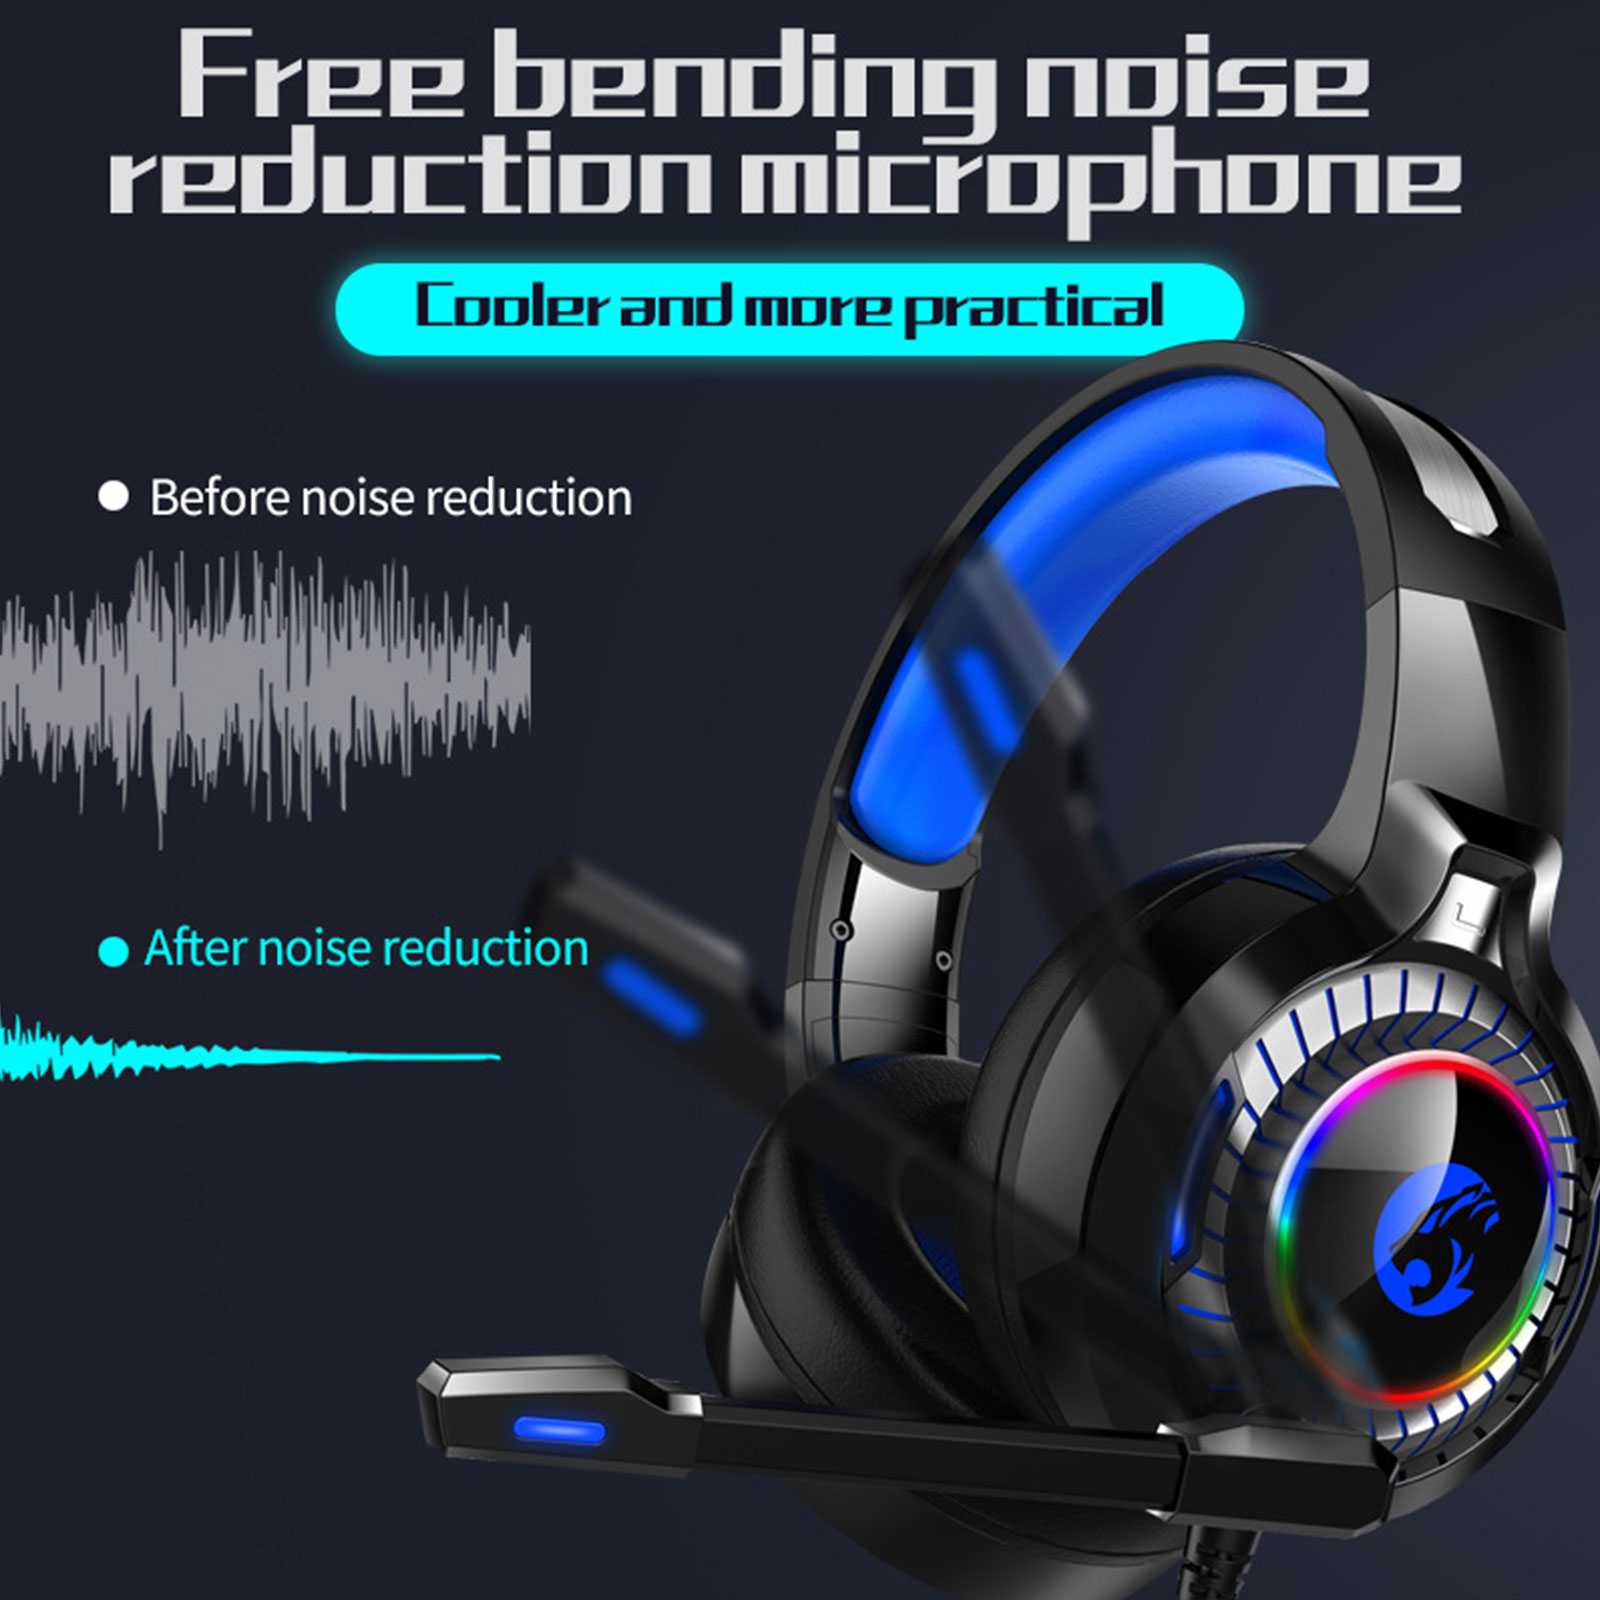 GSUMMER Computer Desktop Headset,Single Hole Notebook with Wheat Wire Control PS4 Headphones Black Noise Reduction Headphones for Music//Daily Leisure//Gaming Headset